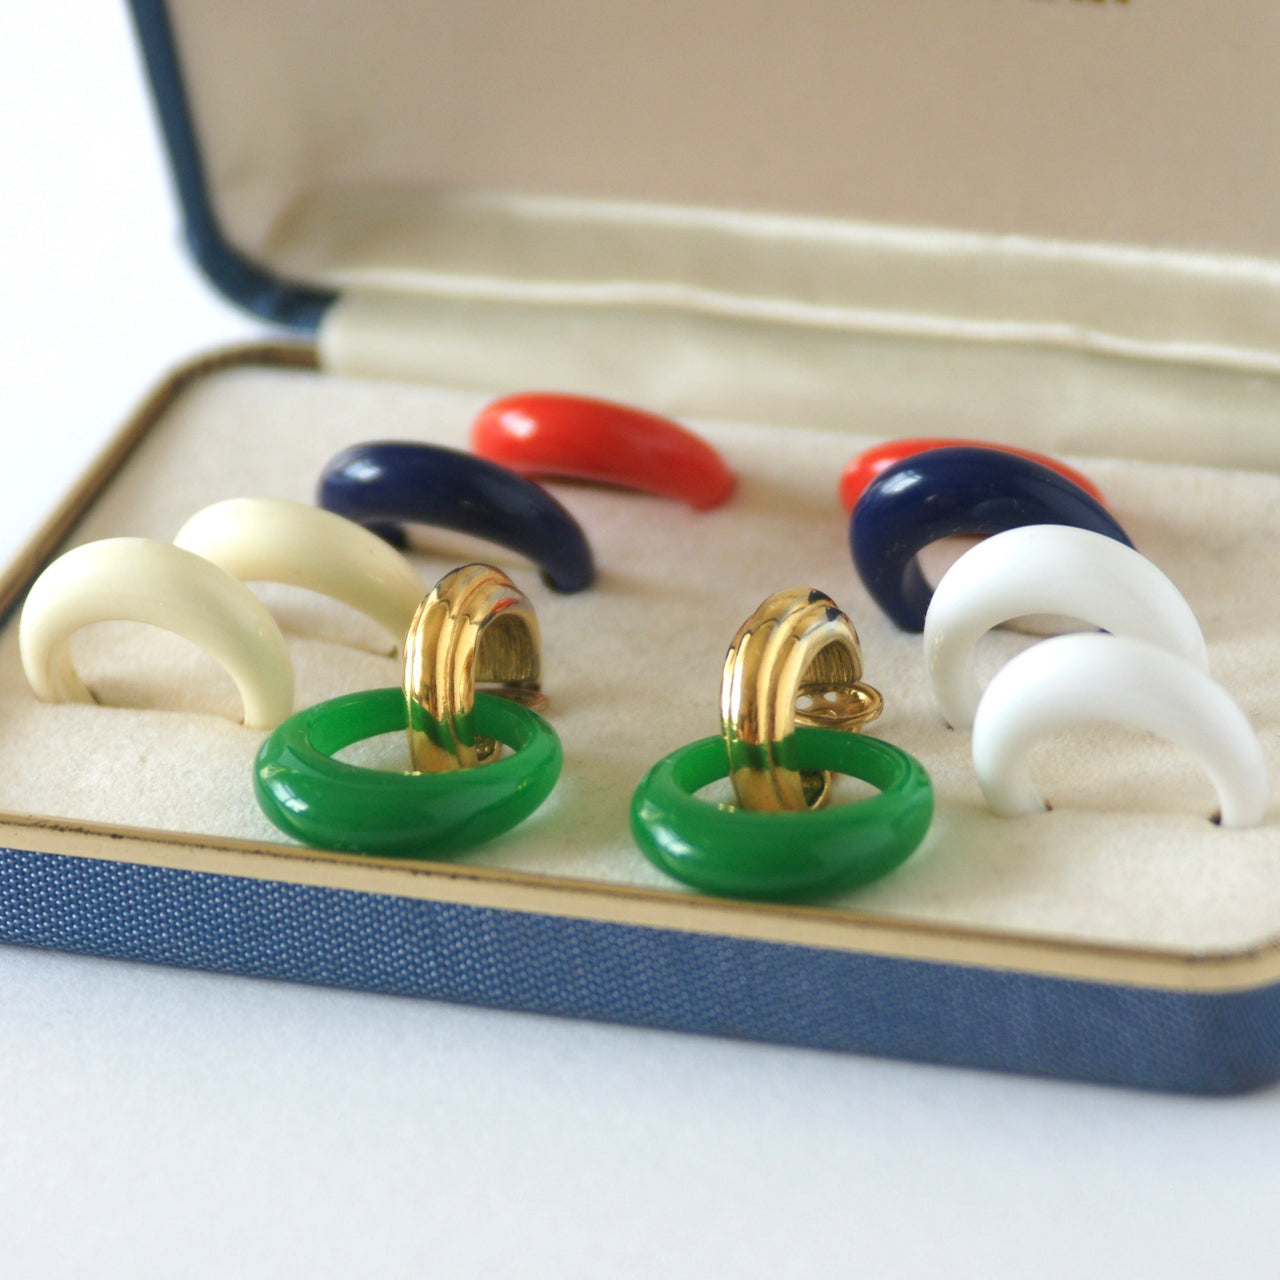 1950s Vintage Trifari Interchangeable Hoop Drop Clip-On Earrings